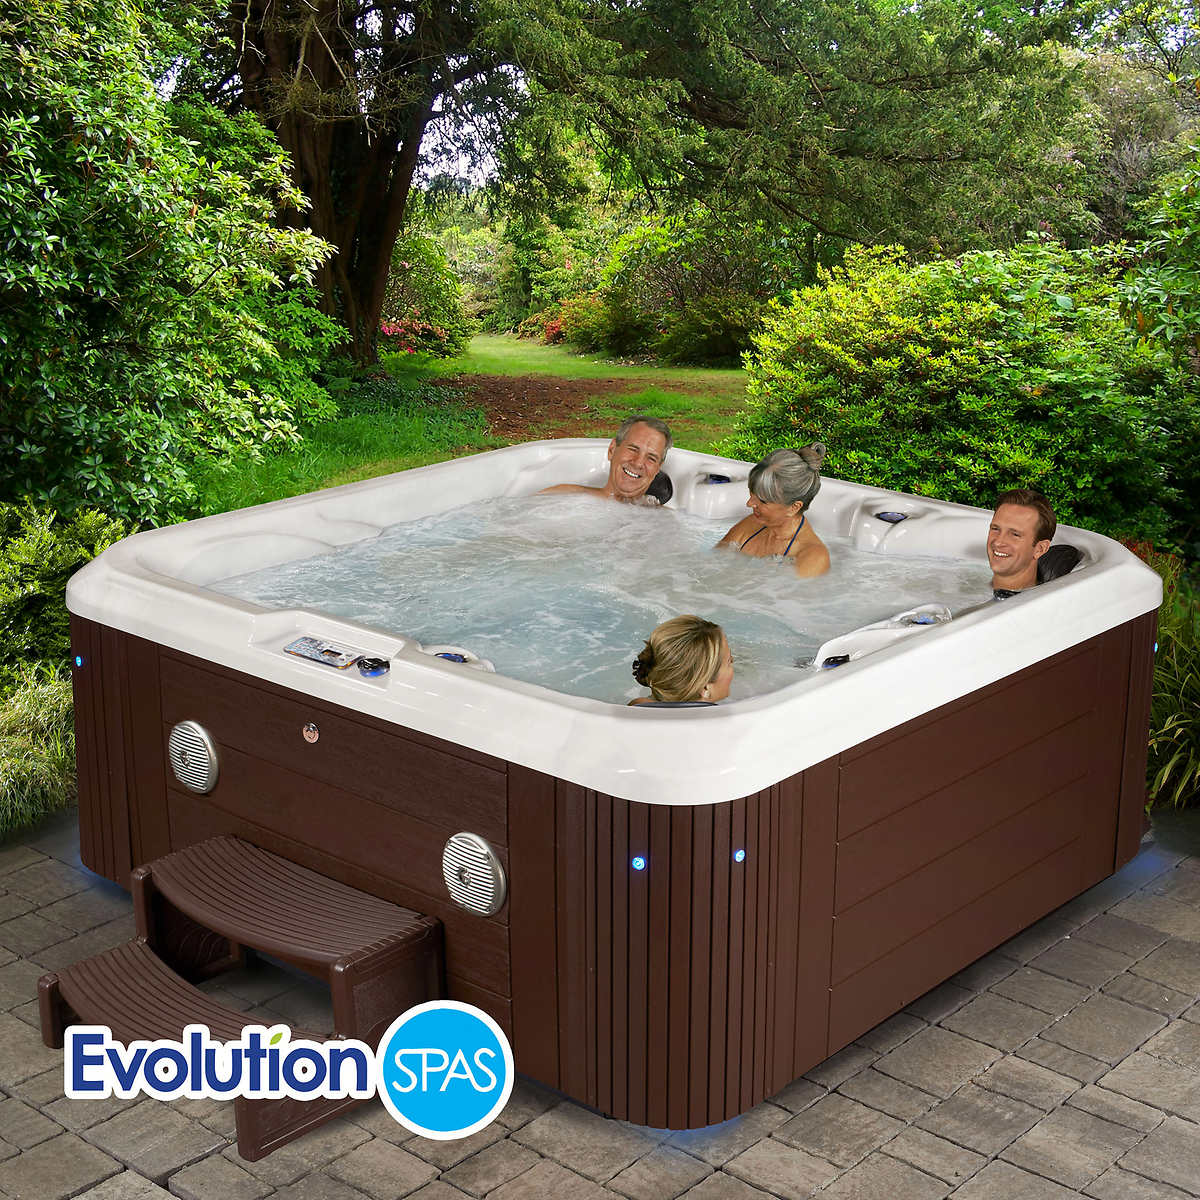 Jacuzzi Pool Jet Evolution Spas Hampton 90 Jet 6 Person Spa Accommodates